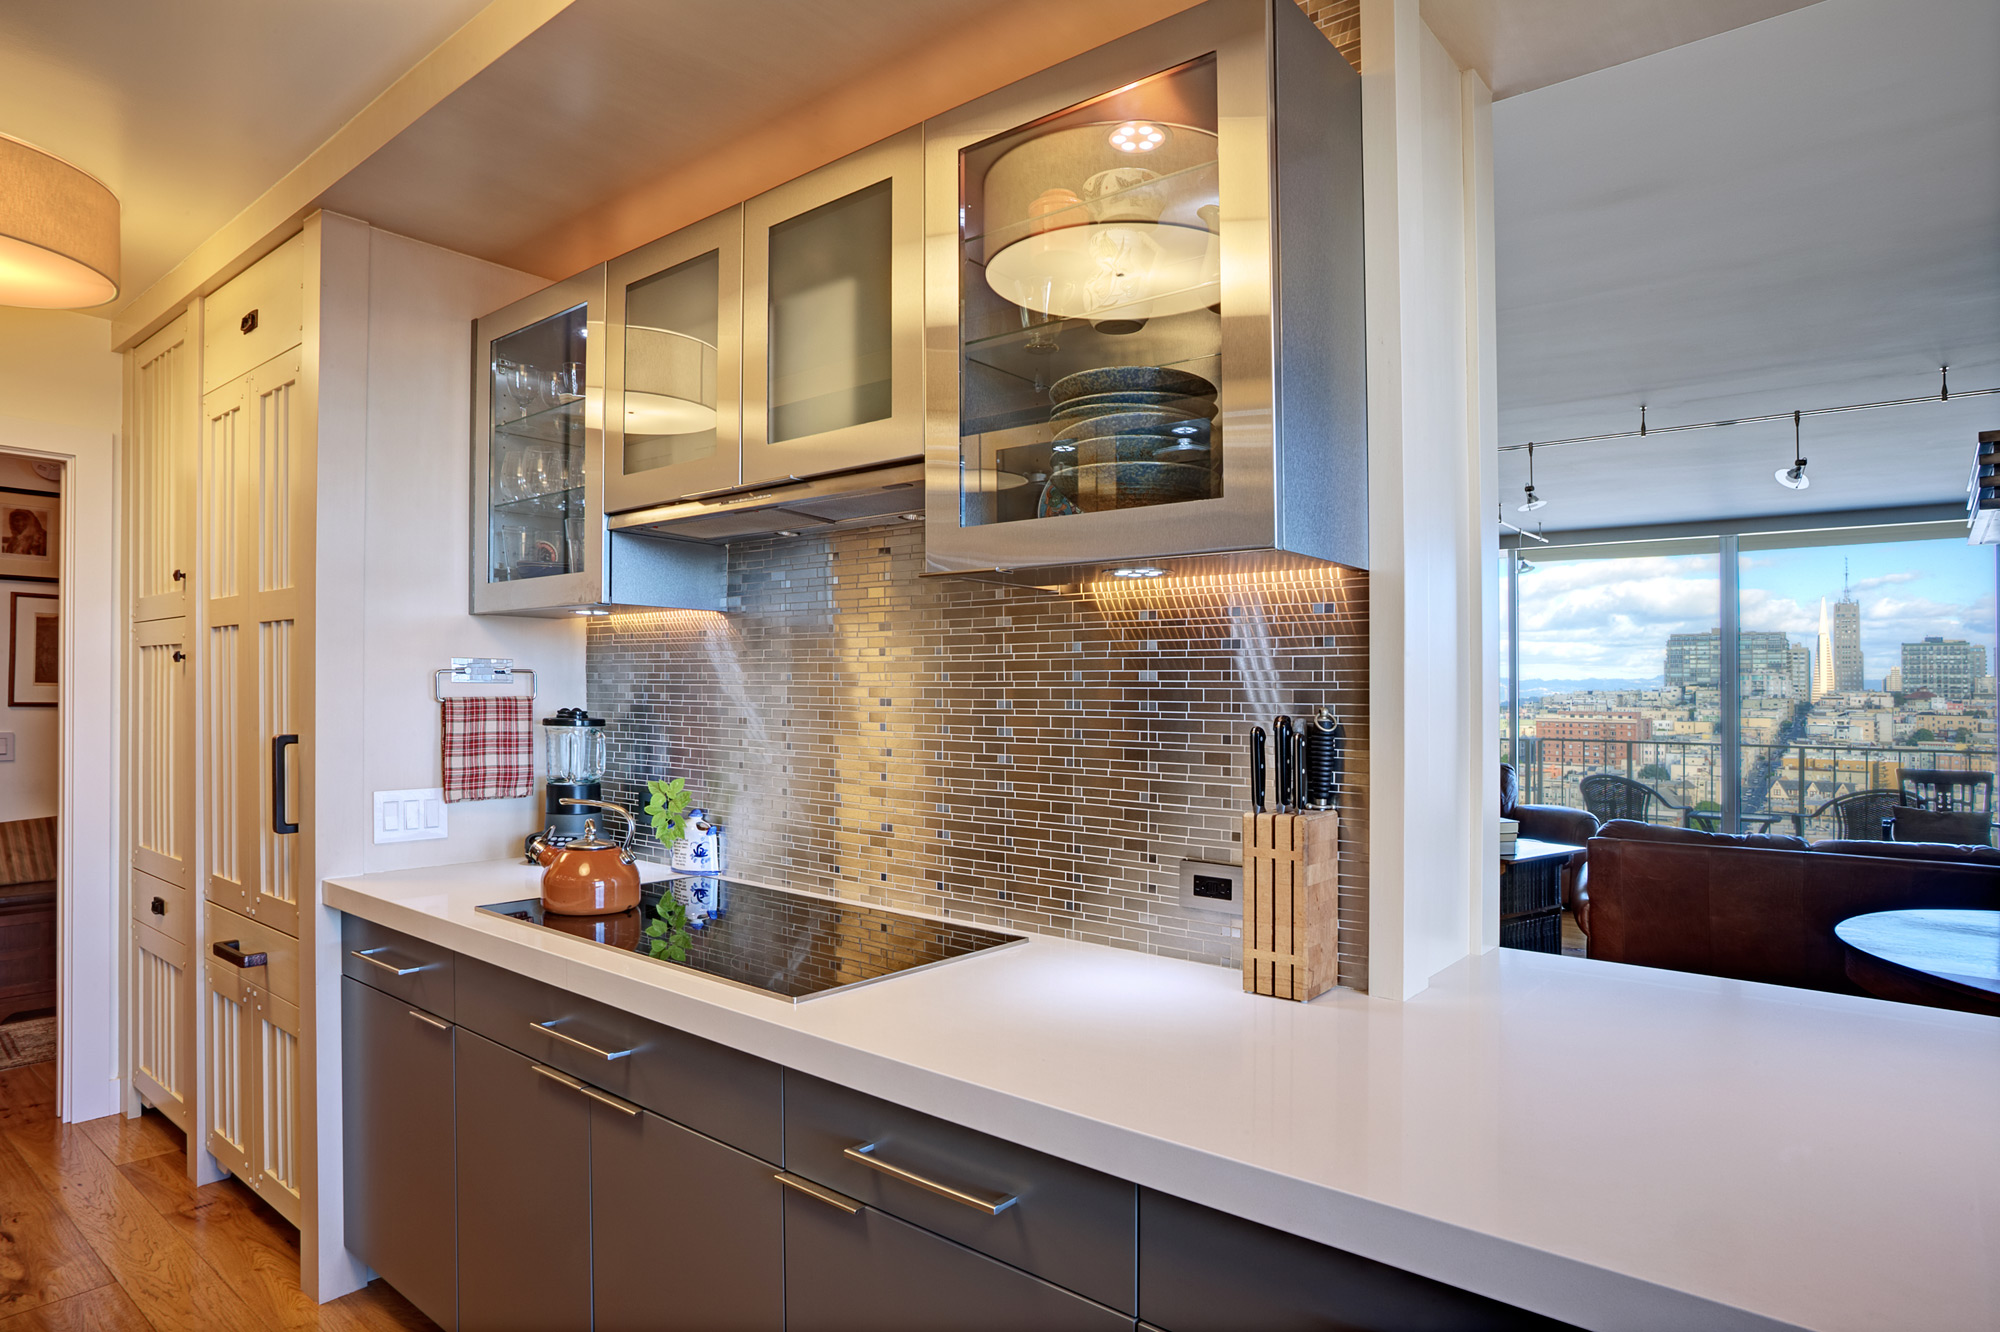 Kaplan-Architects-high-rise-interior-remodeled-kitchen-stainless-finishes.jpg